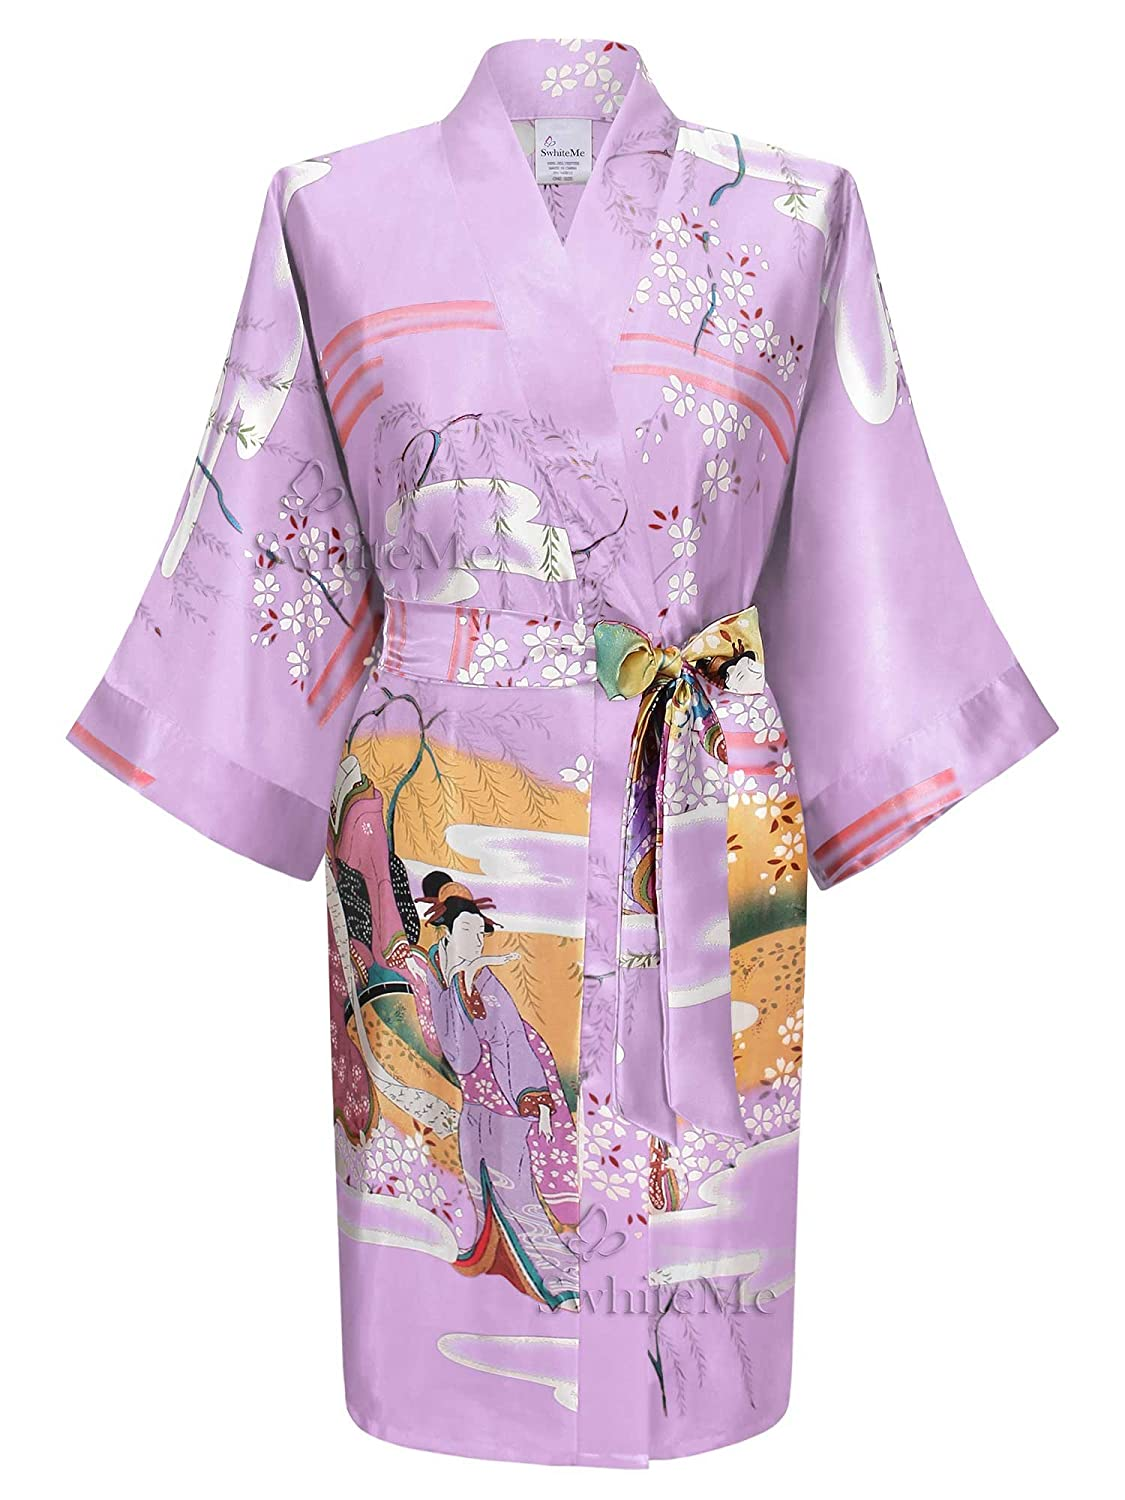 Swhiteme Women's Kimono Robe, Short, Without Pockets